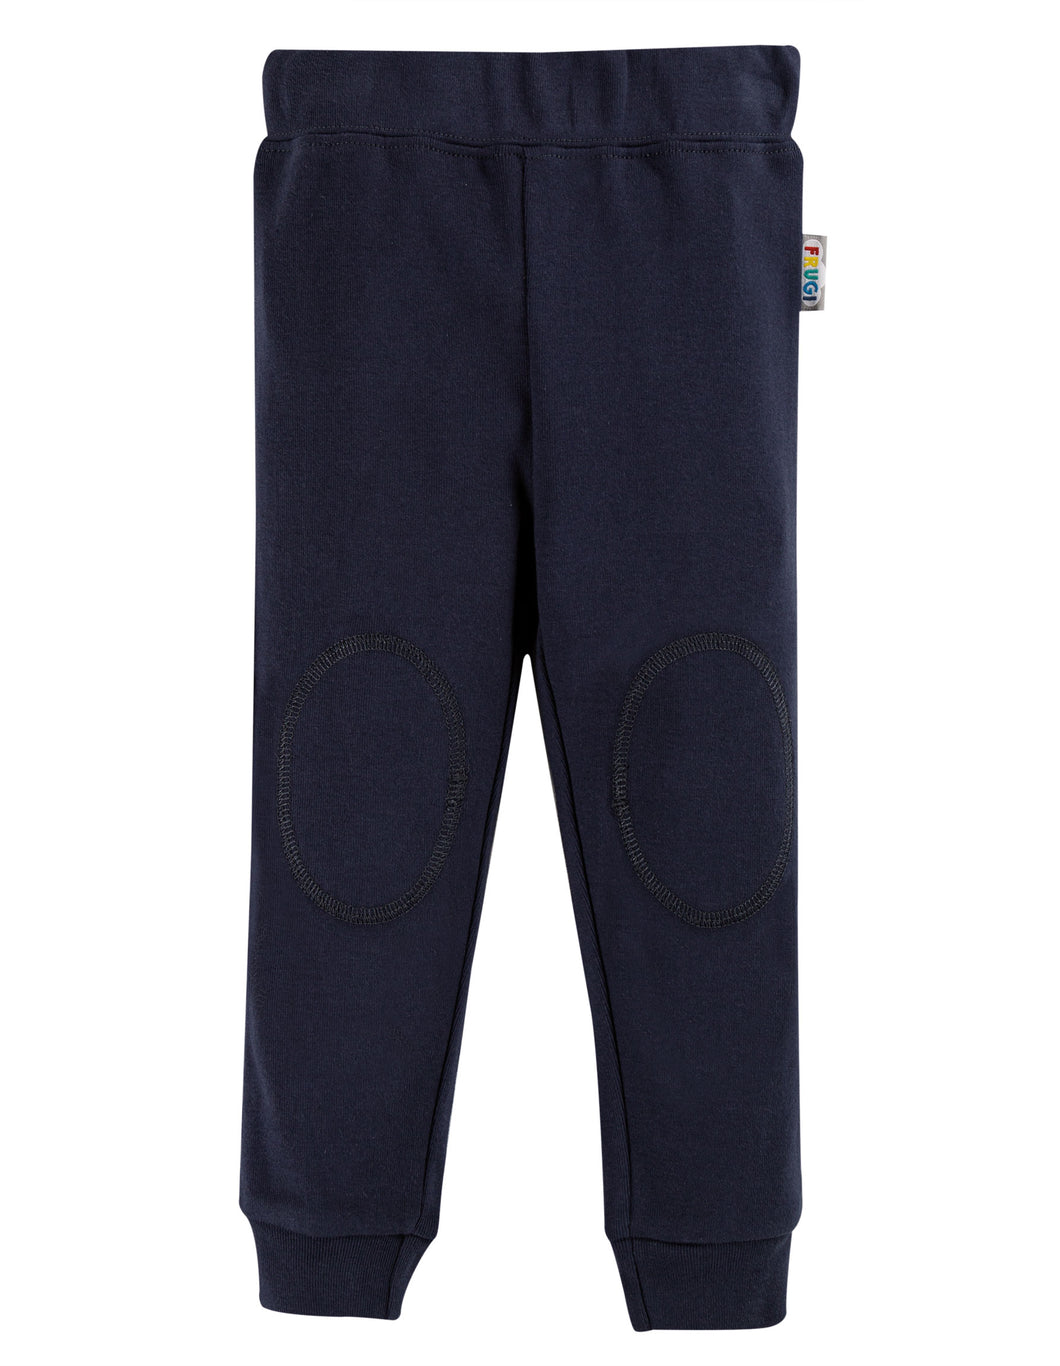 frugi navy cuffed legging